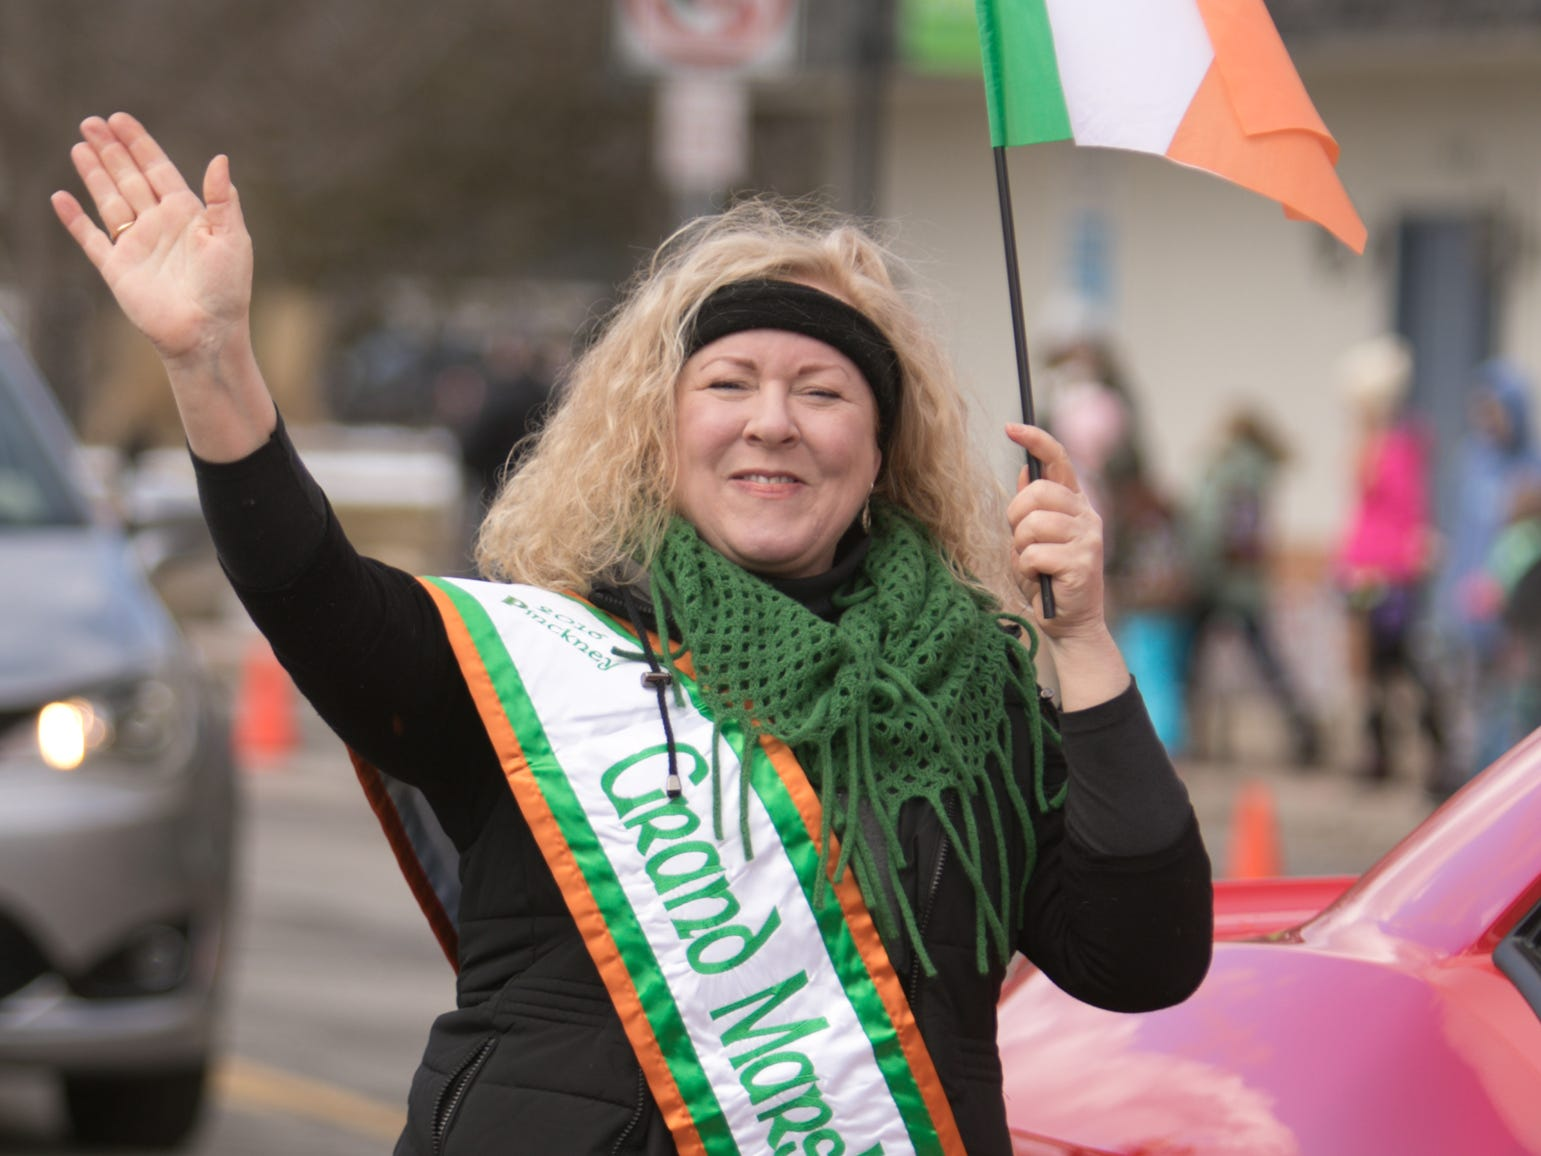 Anne Lezotte, president of the Sarah Regan division of the Ladies Ancient Order of Hibernians and 2016 grand marshal, walks in the Pinckney St. Patrick's Day parade Saturday, March 16, 2019.